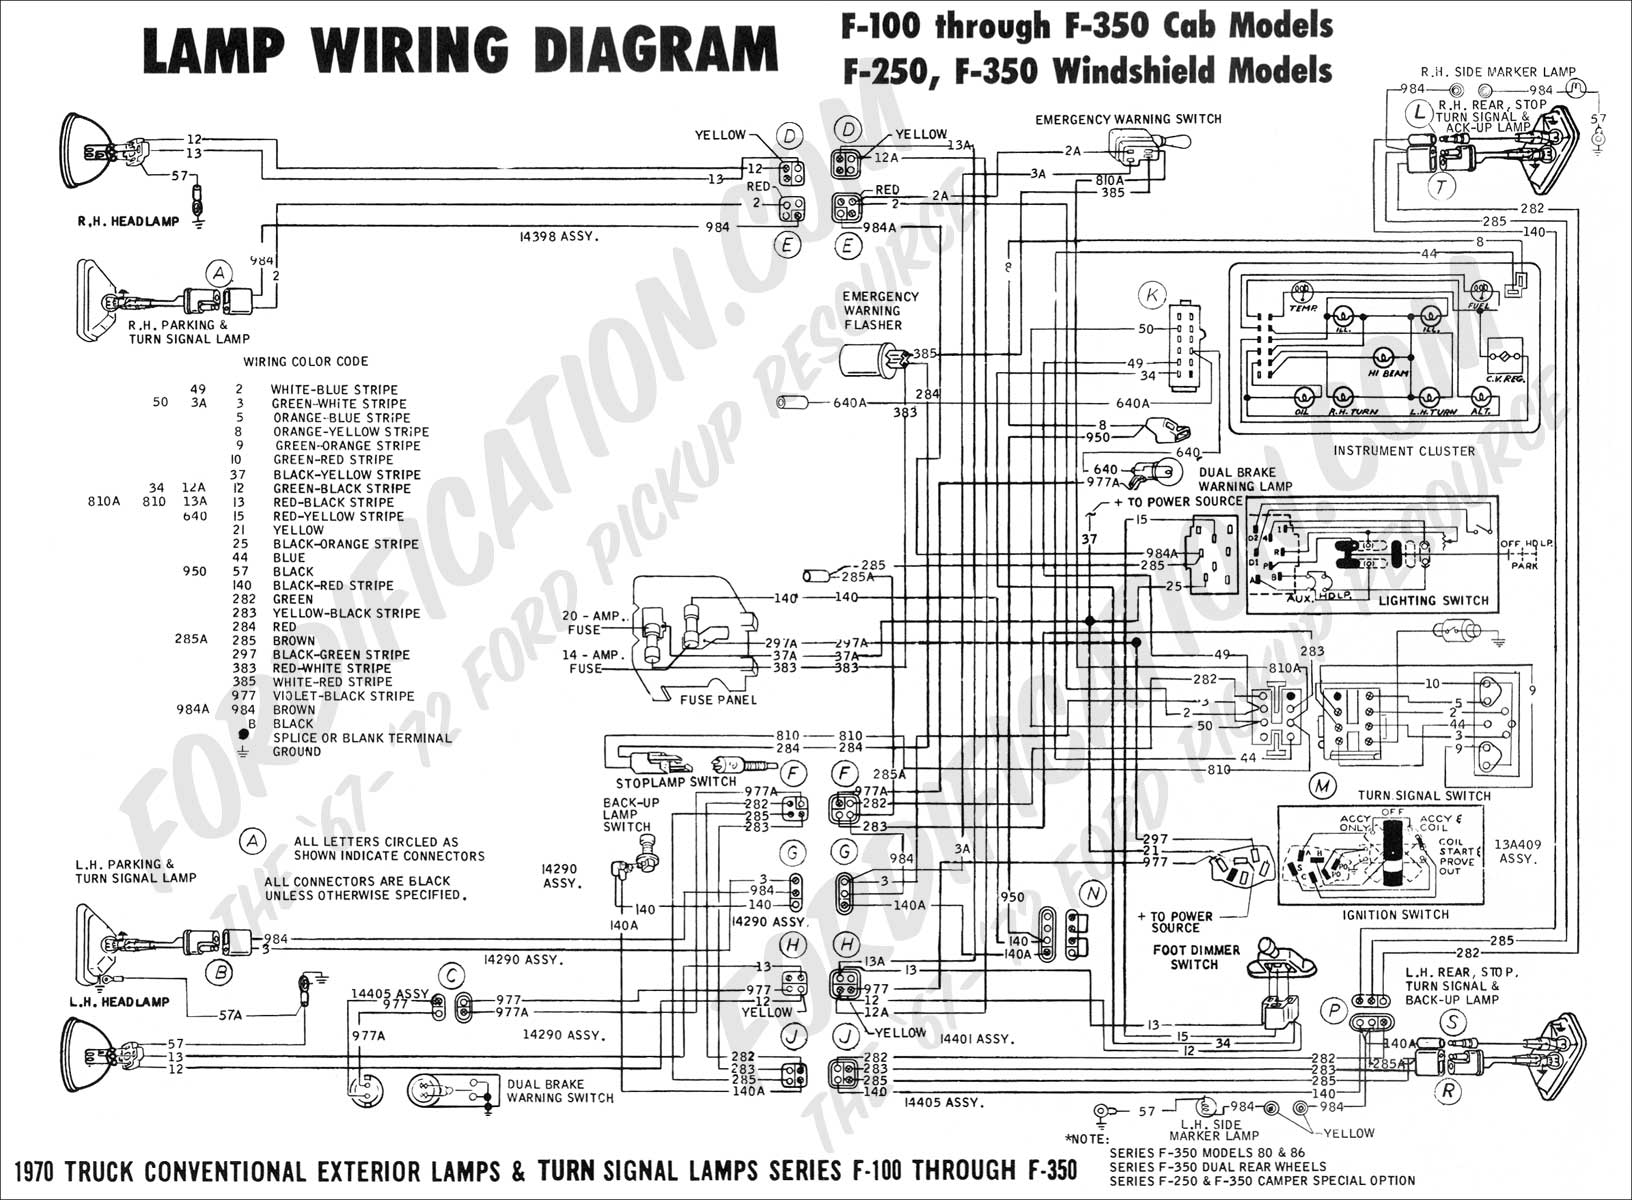 1973 ford f 250 wiring diagram wiring diagram database rh brandgogo co 1977 ford f150 ignition switch wiring diagram 1977 ford f150 radio wiring diagram